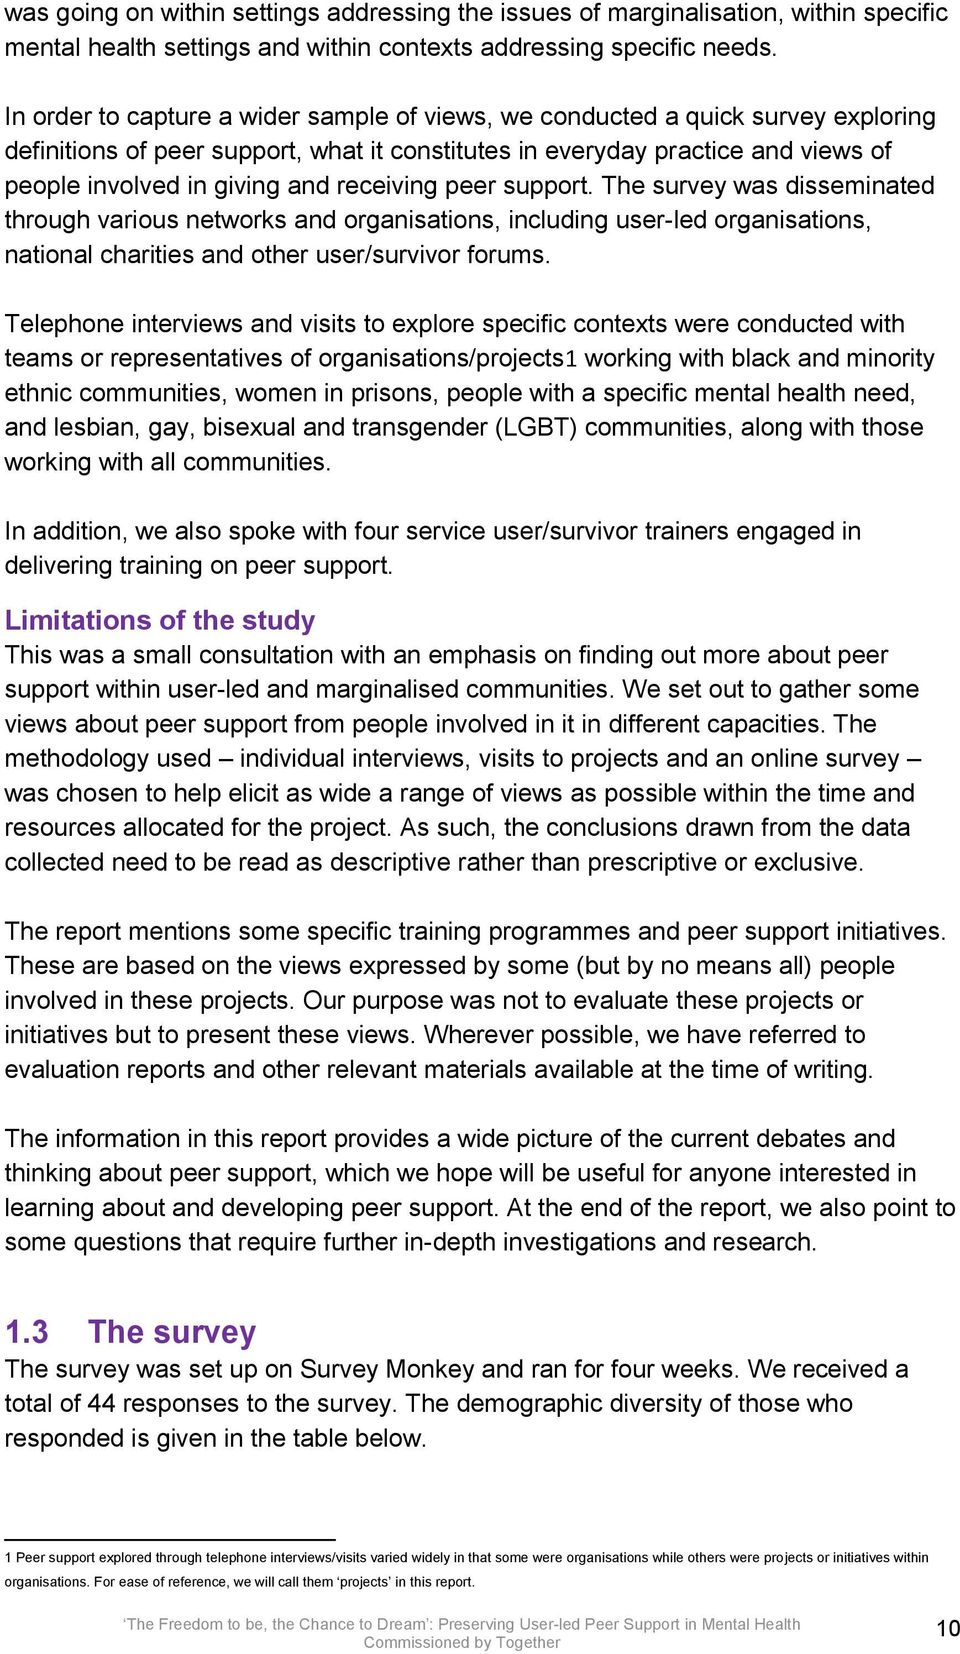 receiving peer support. The survey was disseminated through various networks and organisations, including user-led organisations, national charities and other user/survivor forums.